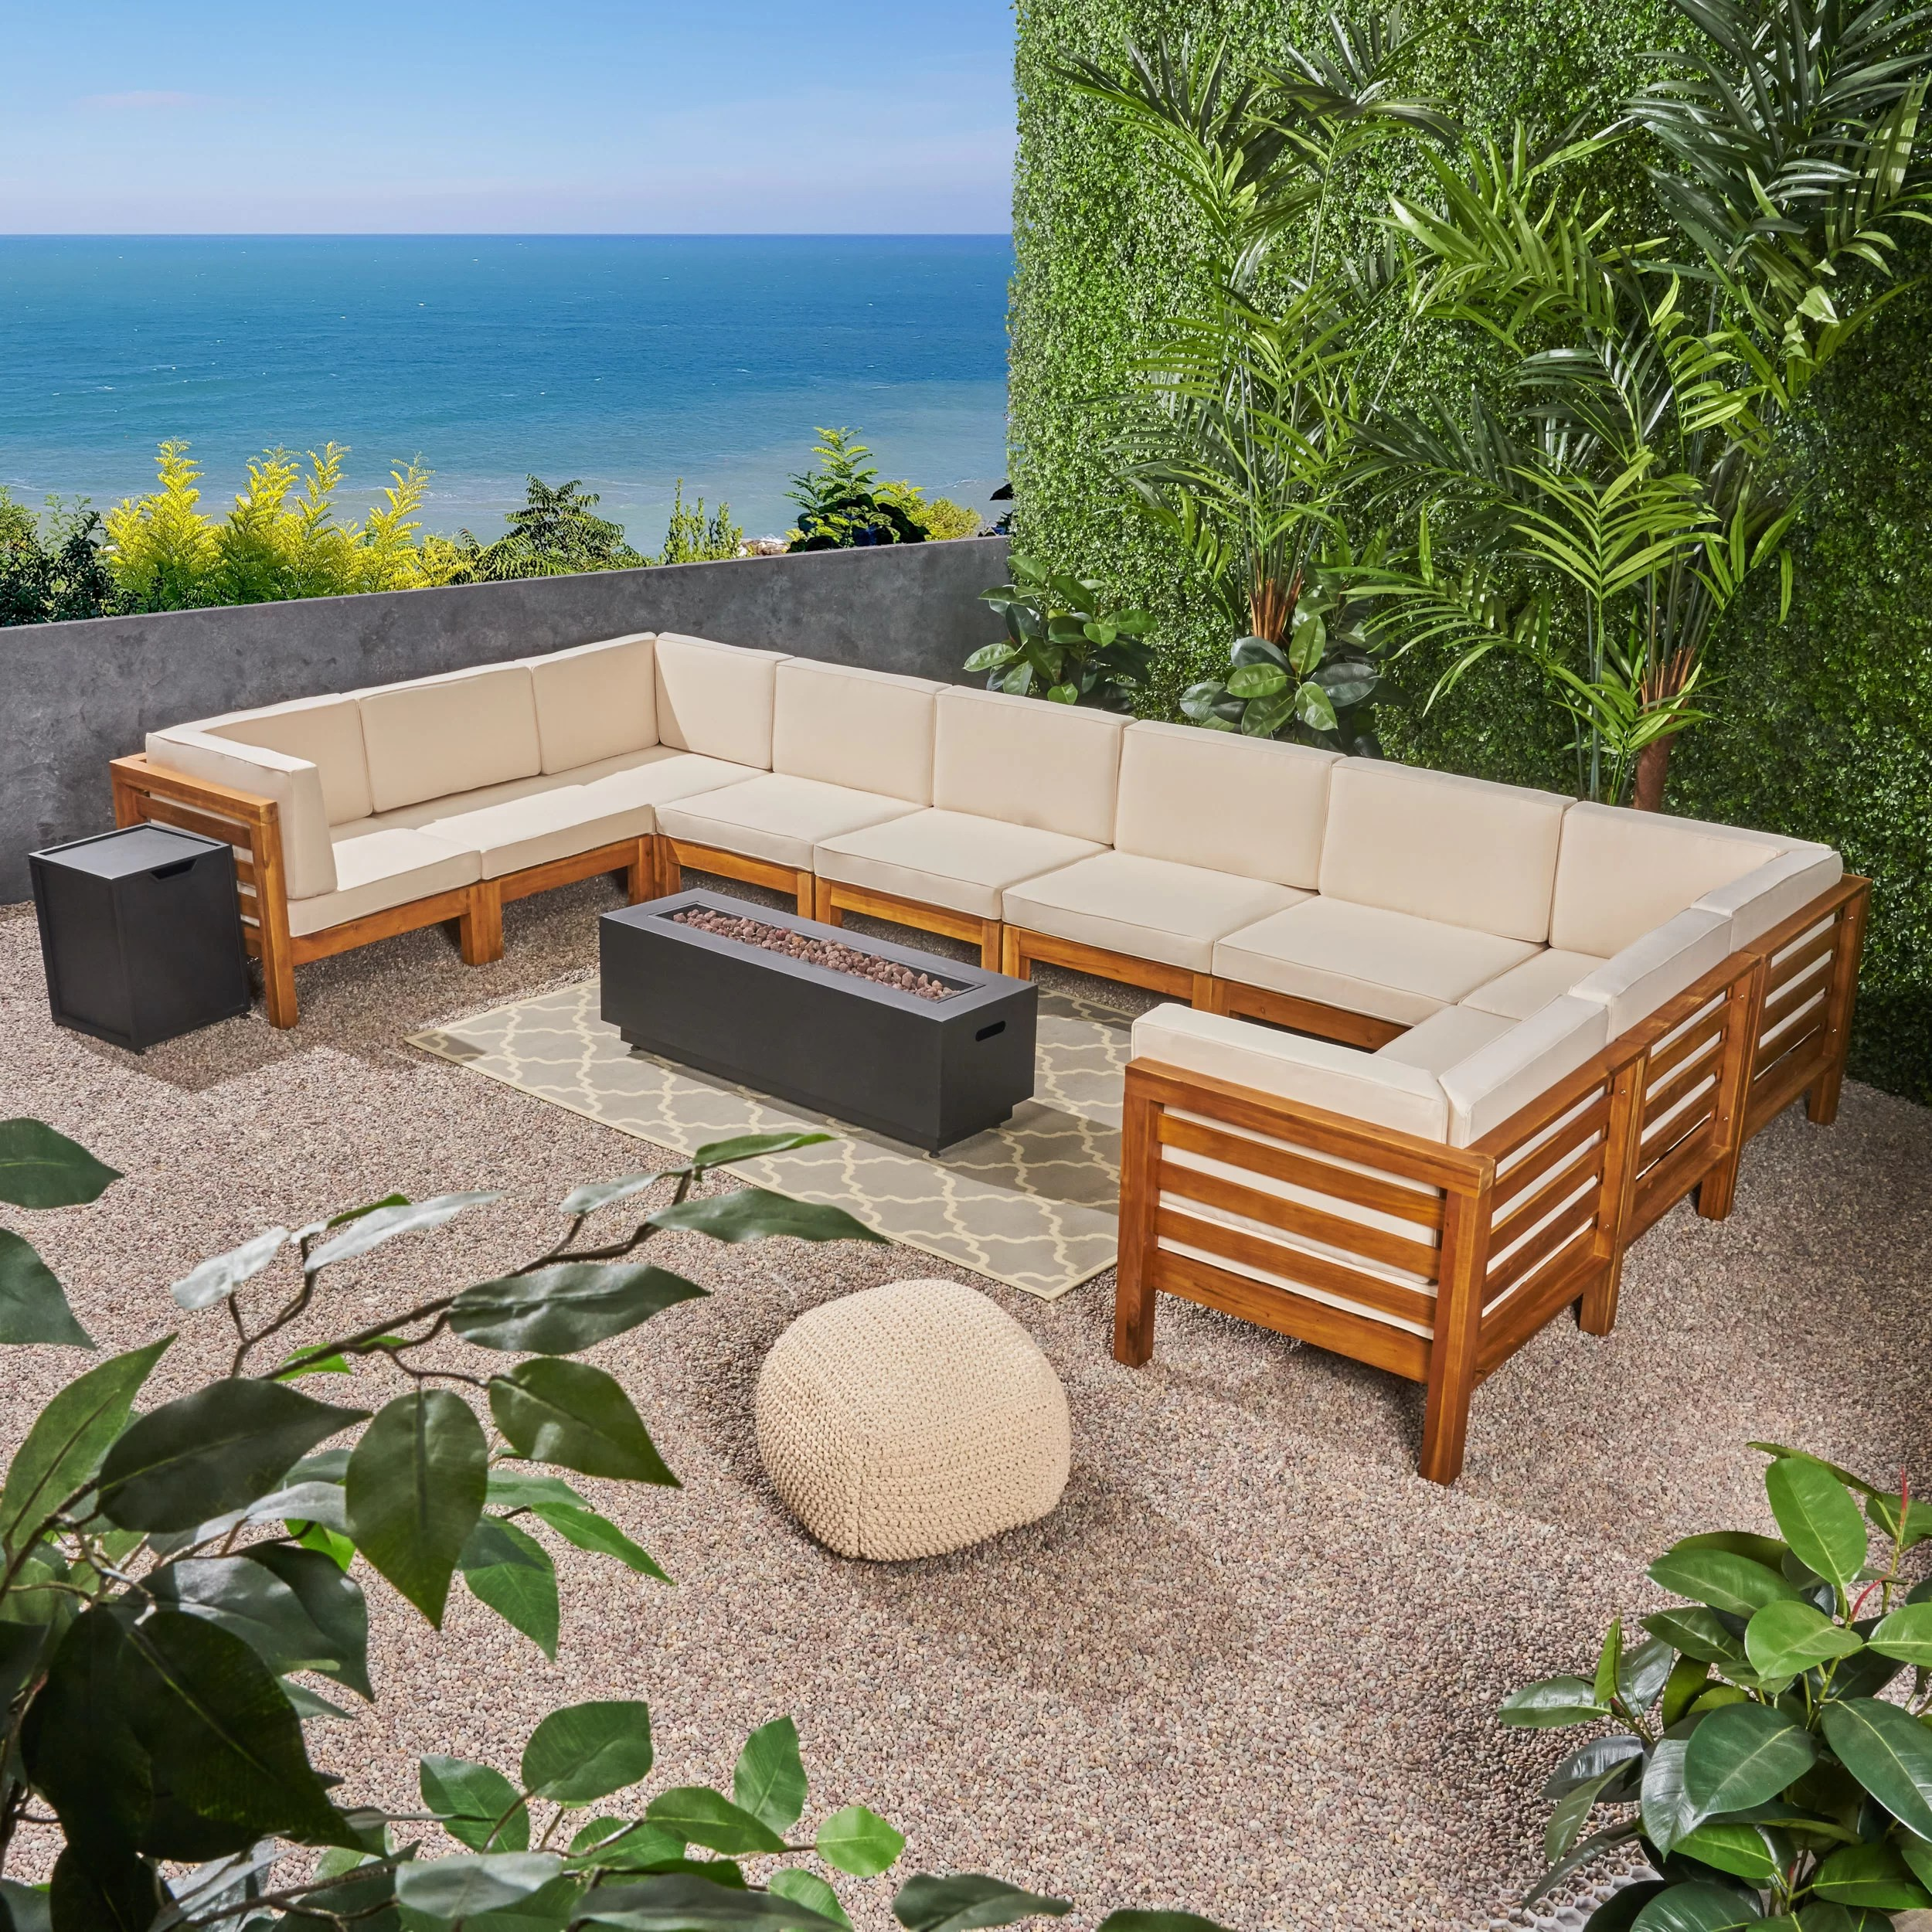 Urban Sofa Barneveld Maxwell Outdoor 12 Piece Sectional Seating Group With Cushions